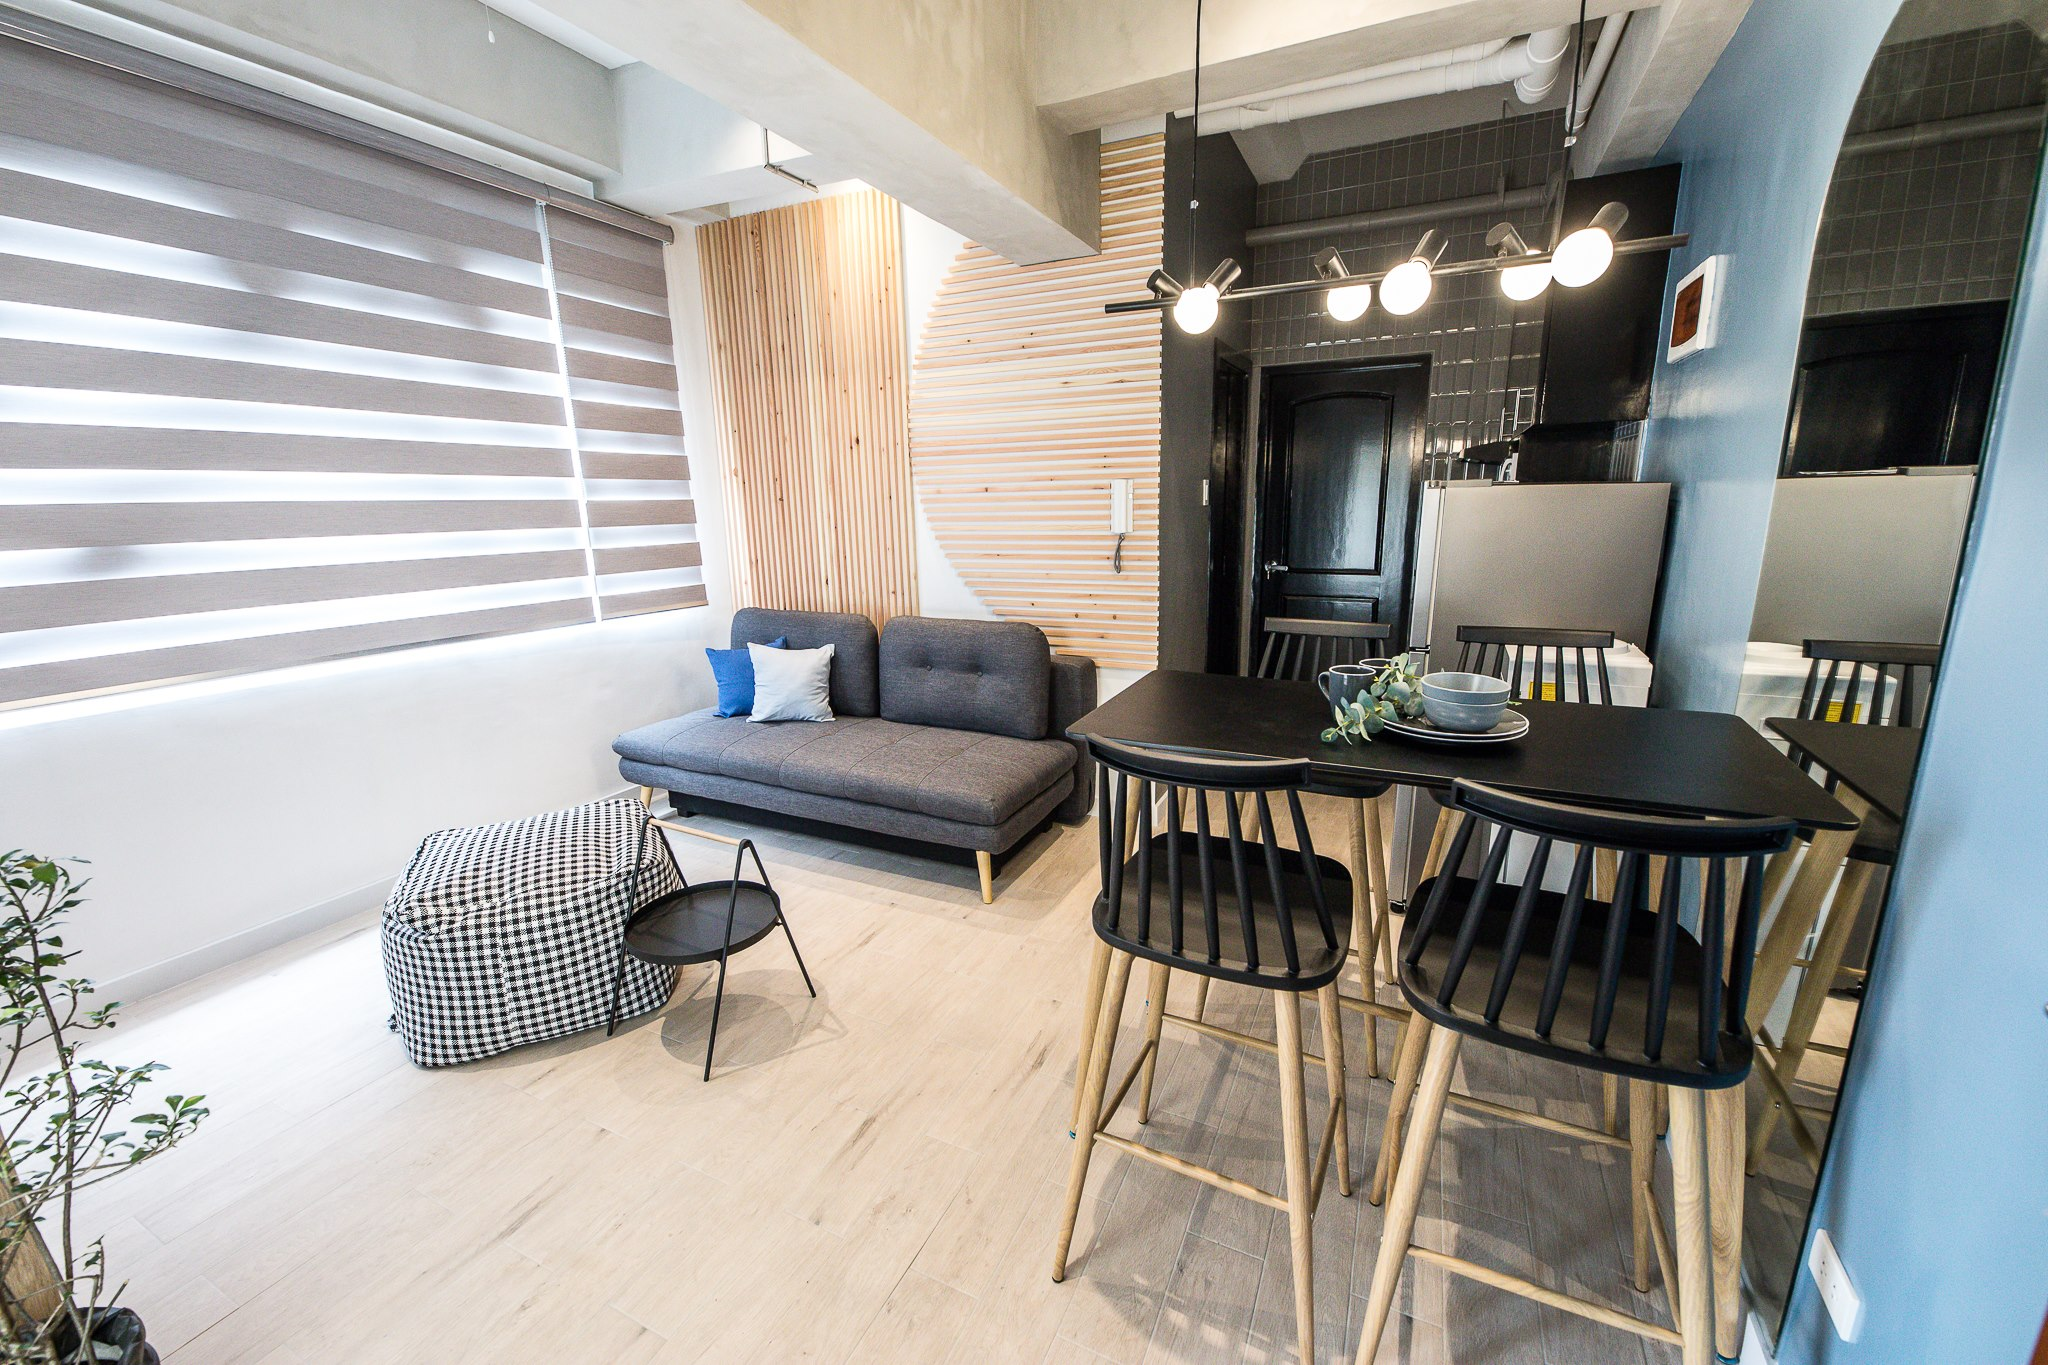 Insider Information on the Transformation of a 40 sqm Condo